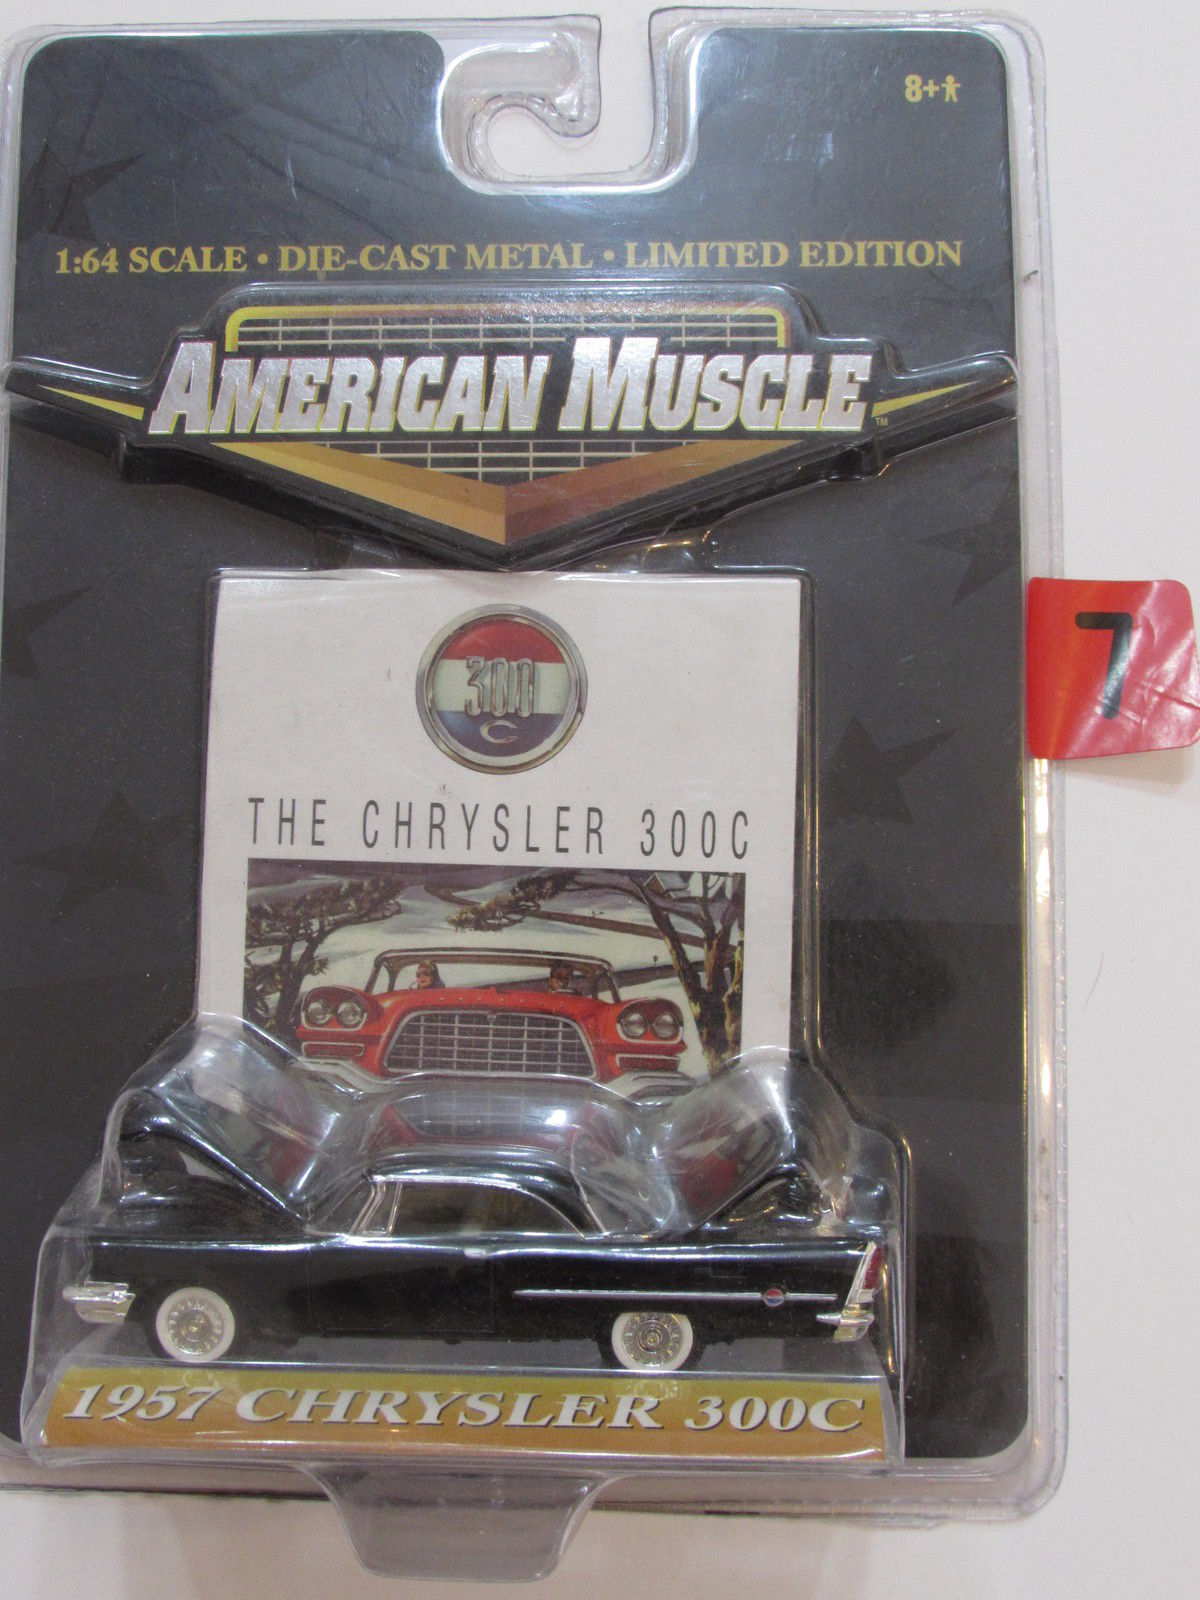 AMERICAN MUSCLE 1:64 SCALE THE CHRYSLER 300C - 1957 CHRYSLER 300C BLACK